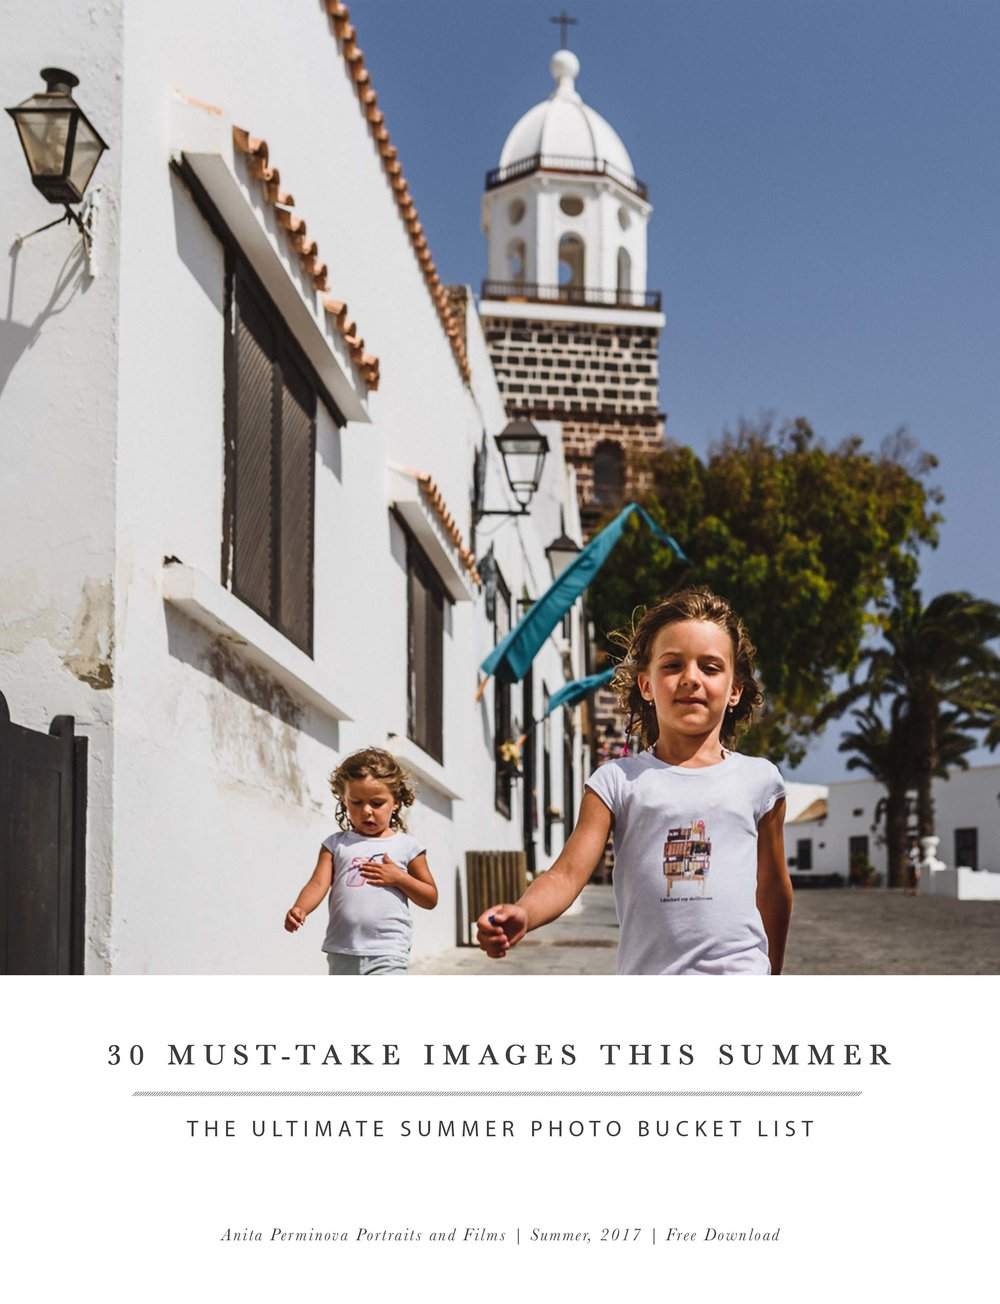 anita perminova amsterdam portrait photographer and filmmaker giveaway summer photo challenge photography tips freebie downloadable copy must take images